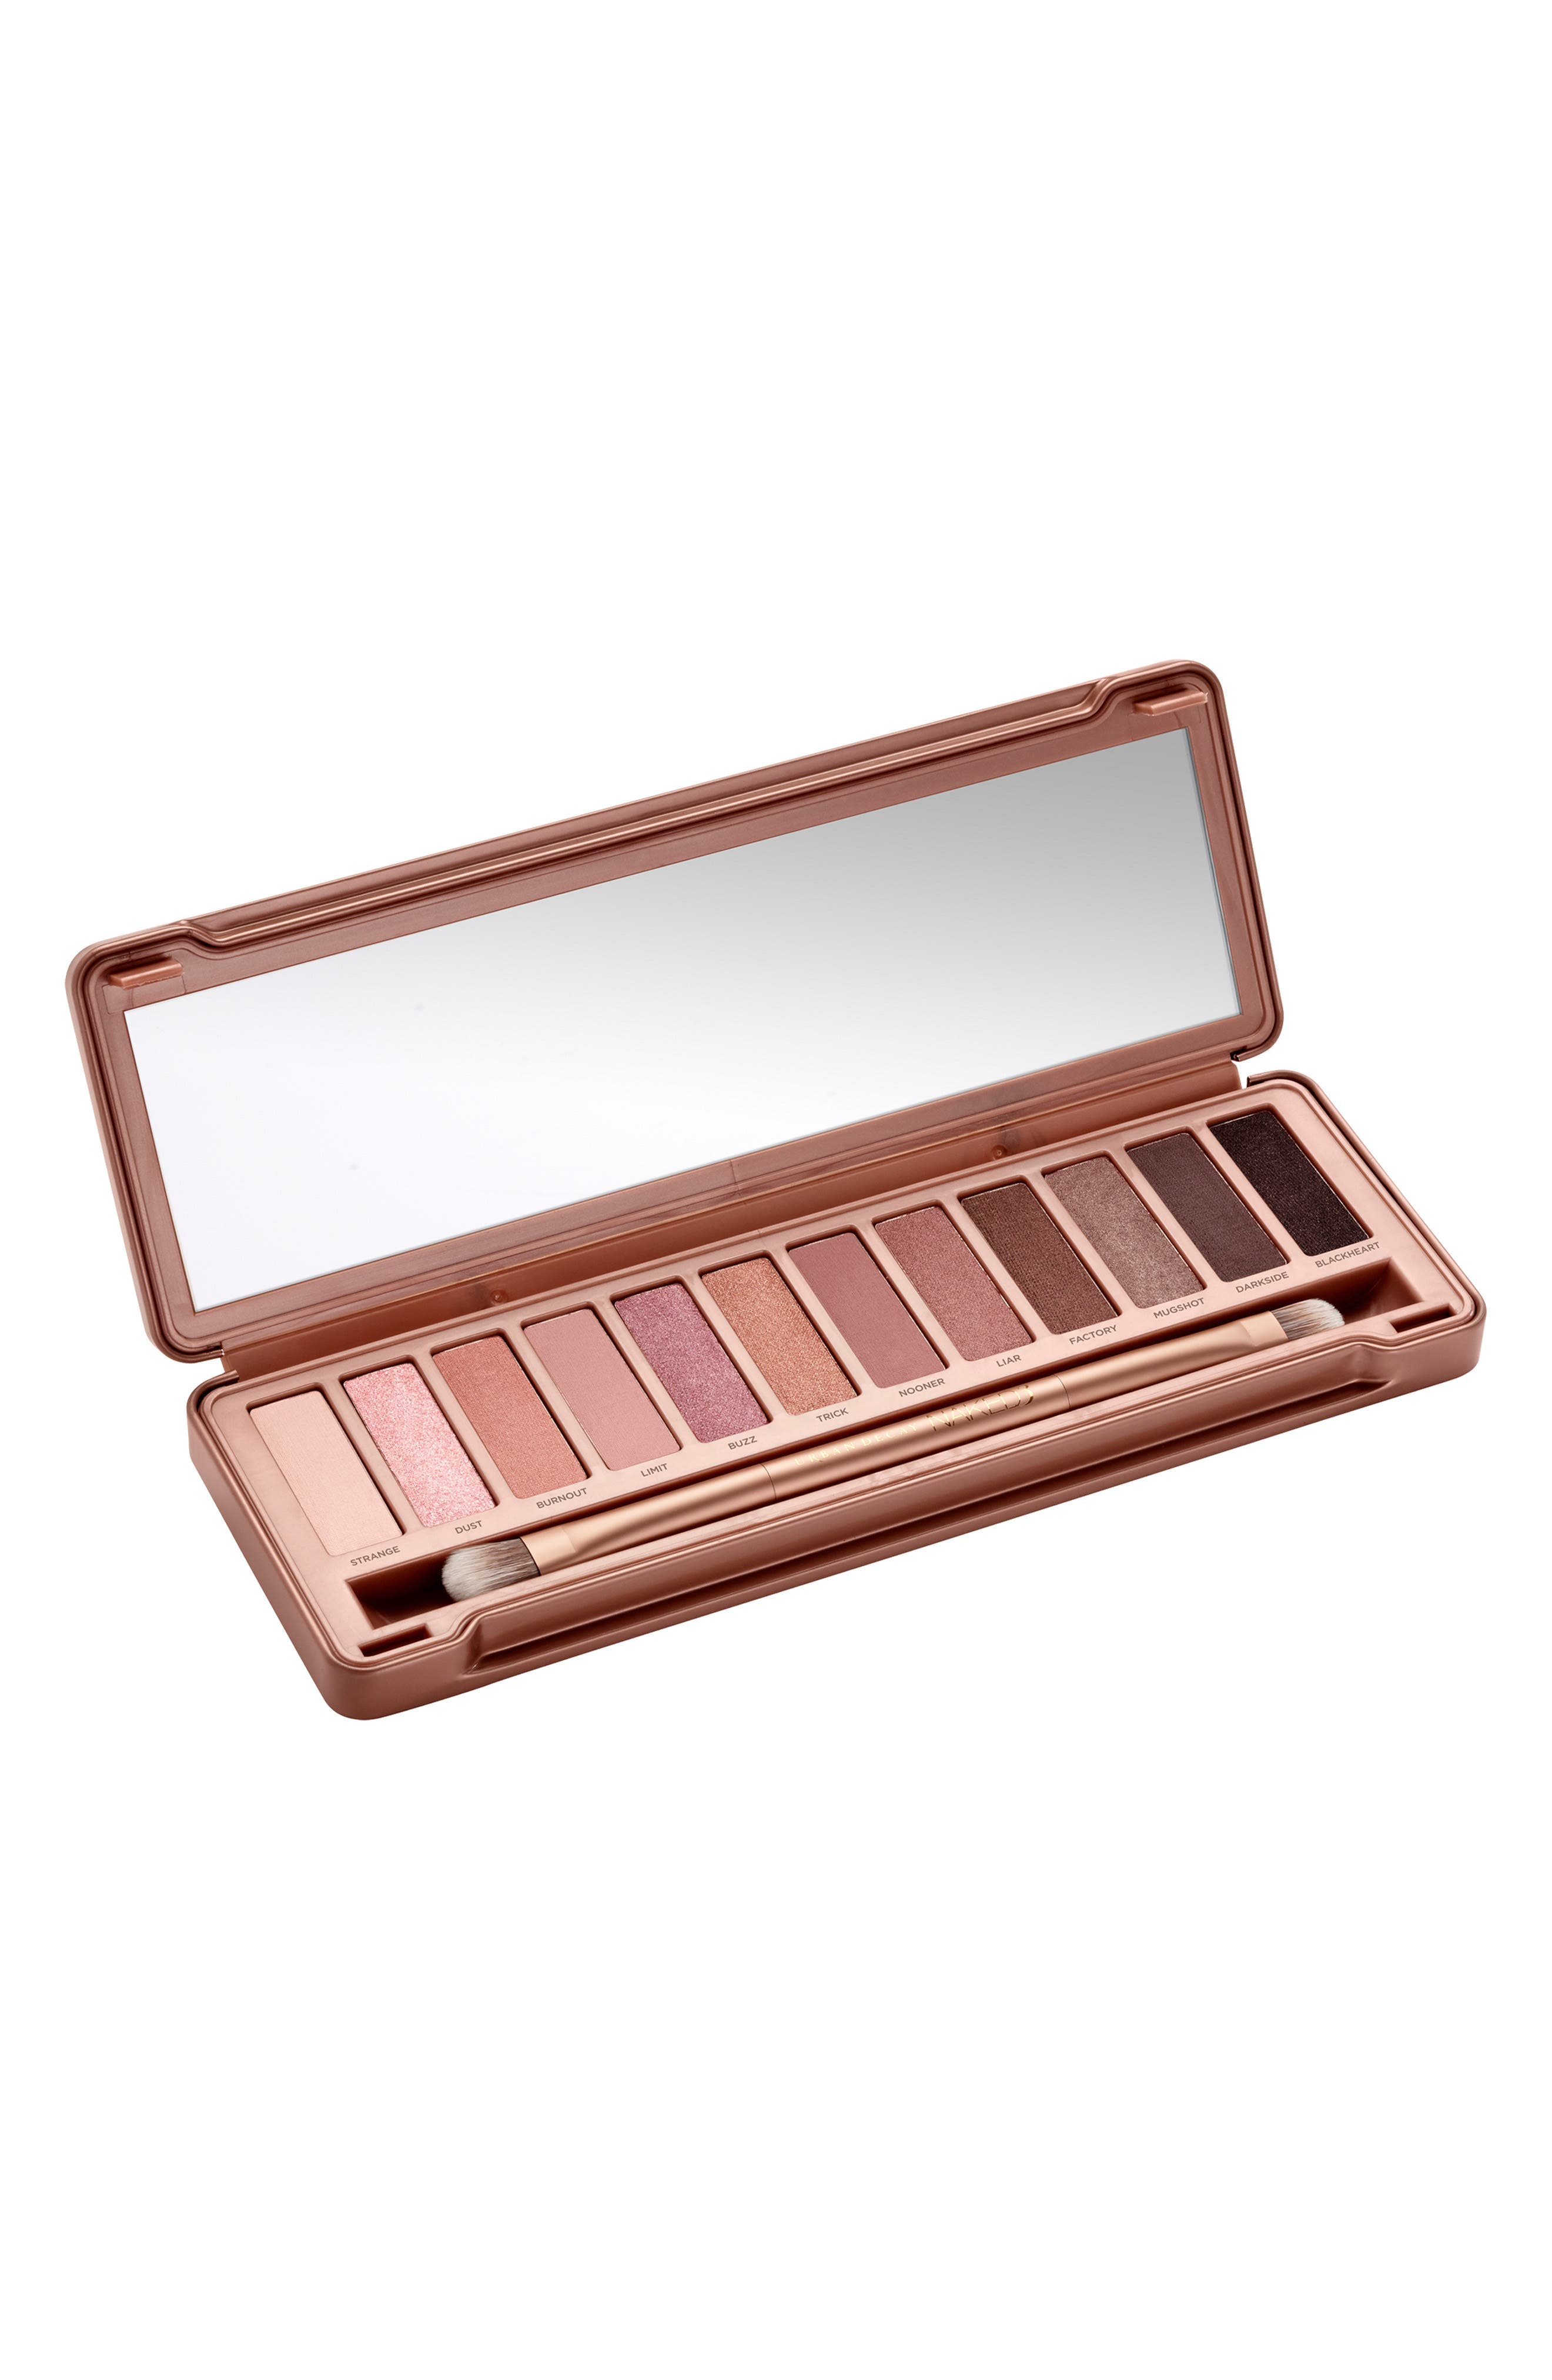 Image of Urban Decay Naked 3 Eyeshadow Palette